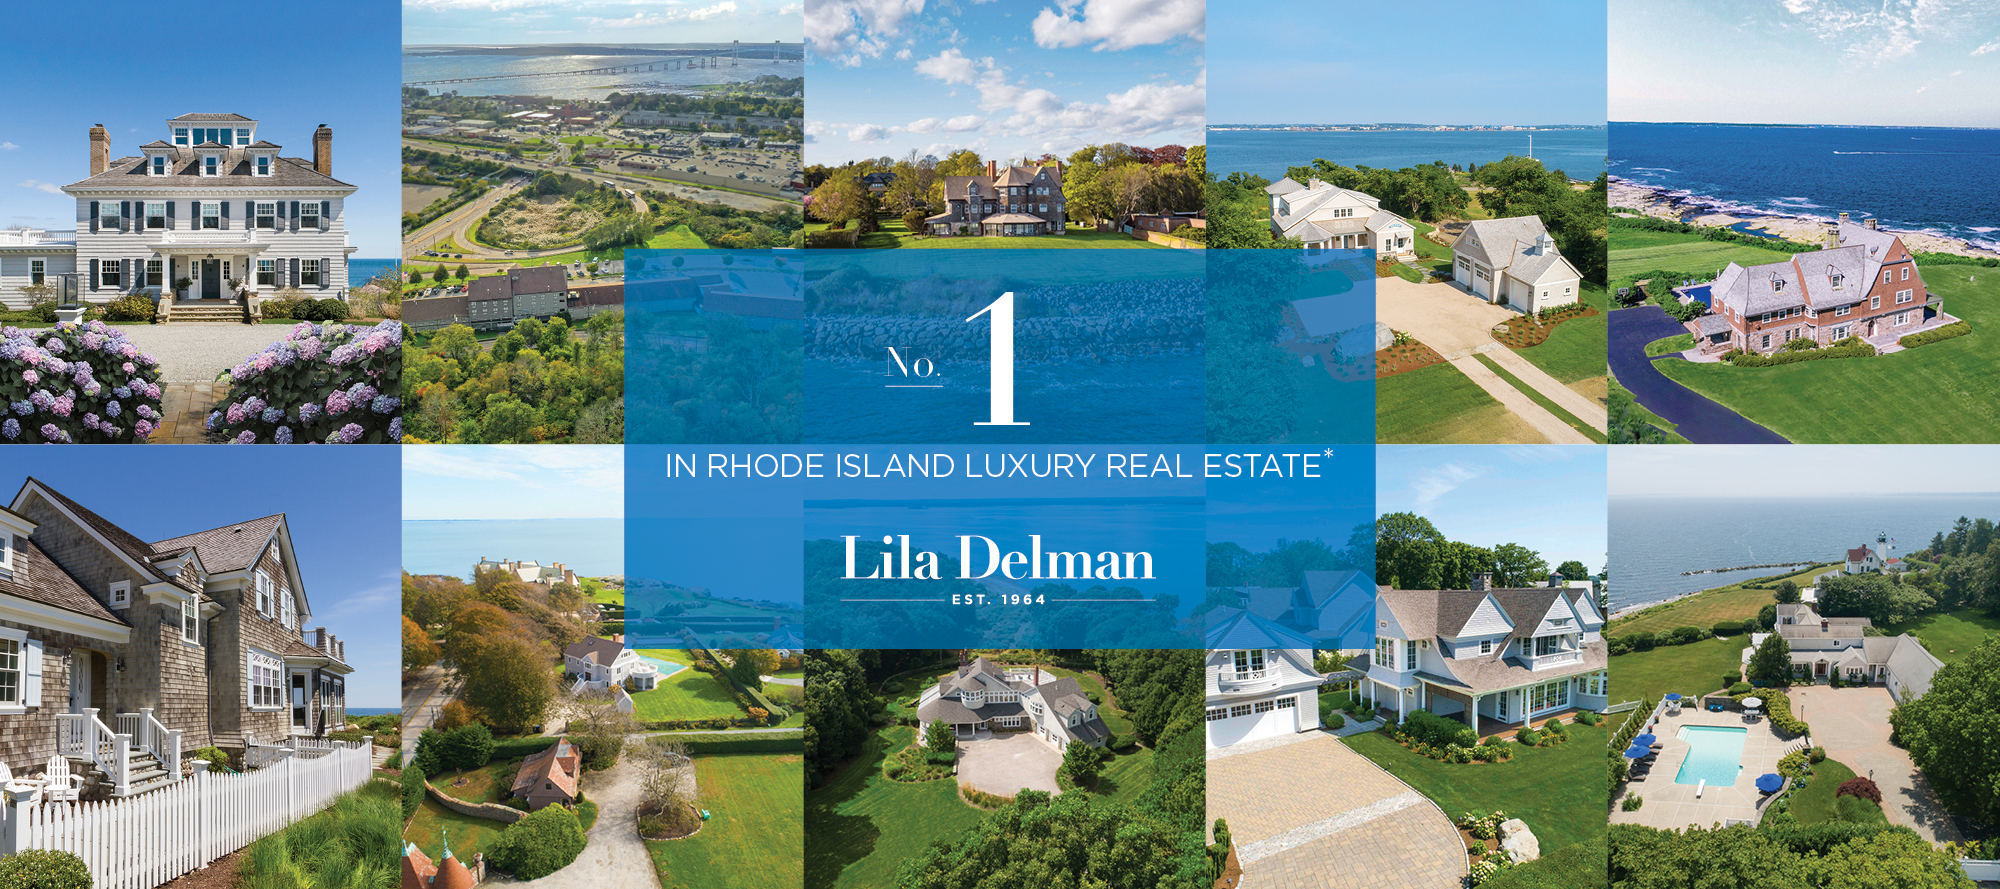 LILA DELMAN REAL ESTATE CELEBRATES A RECORD BREAKING 2019, HAVING CLOSED OVER $560M IN SALES VOLUME AND MAINTAINED LEADERSHIP IN THE LUXURY MARKET